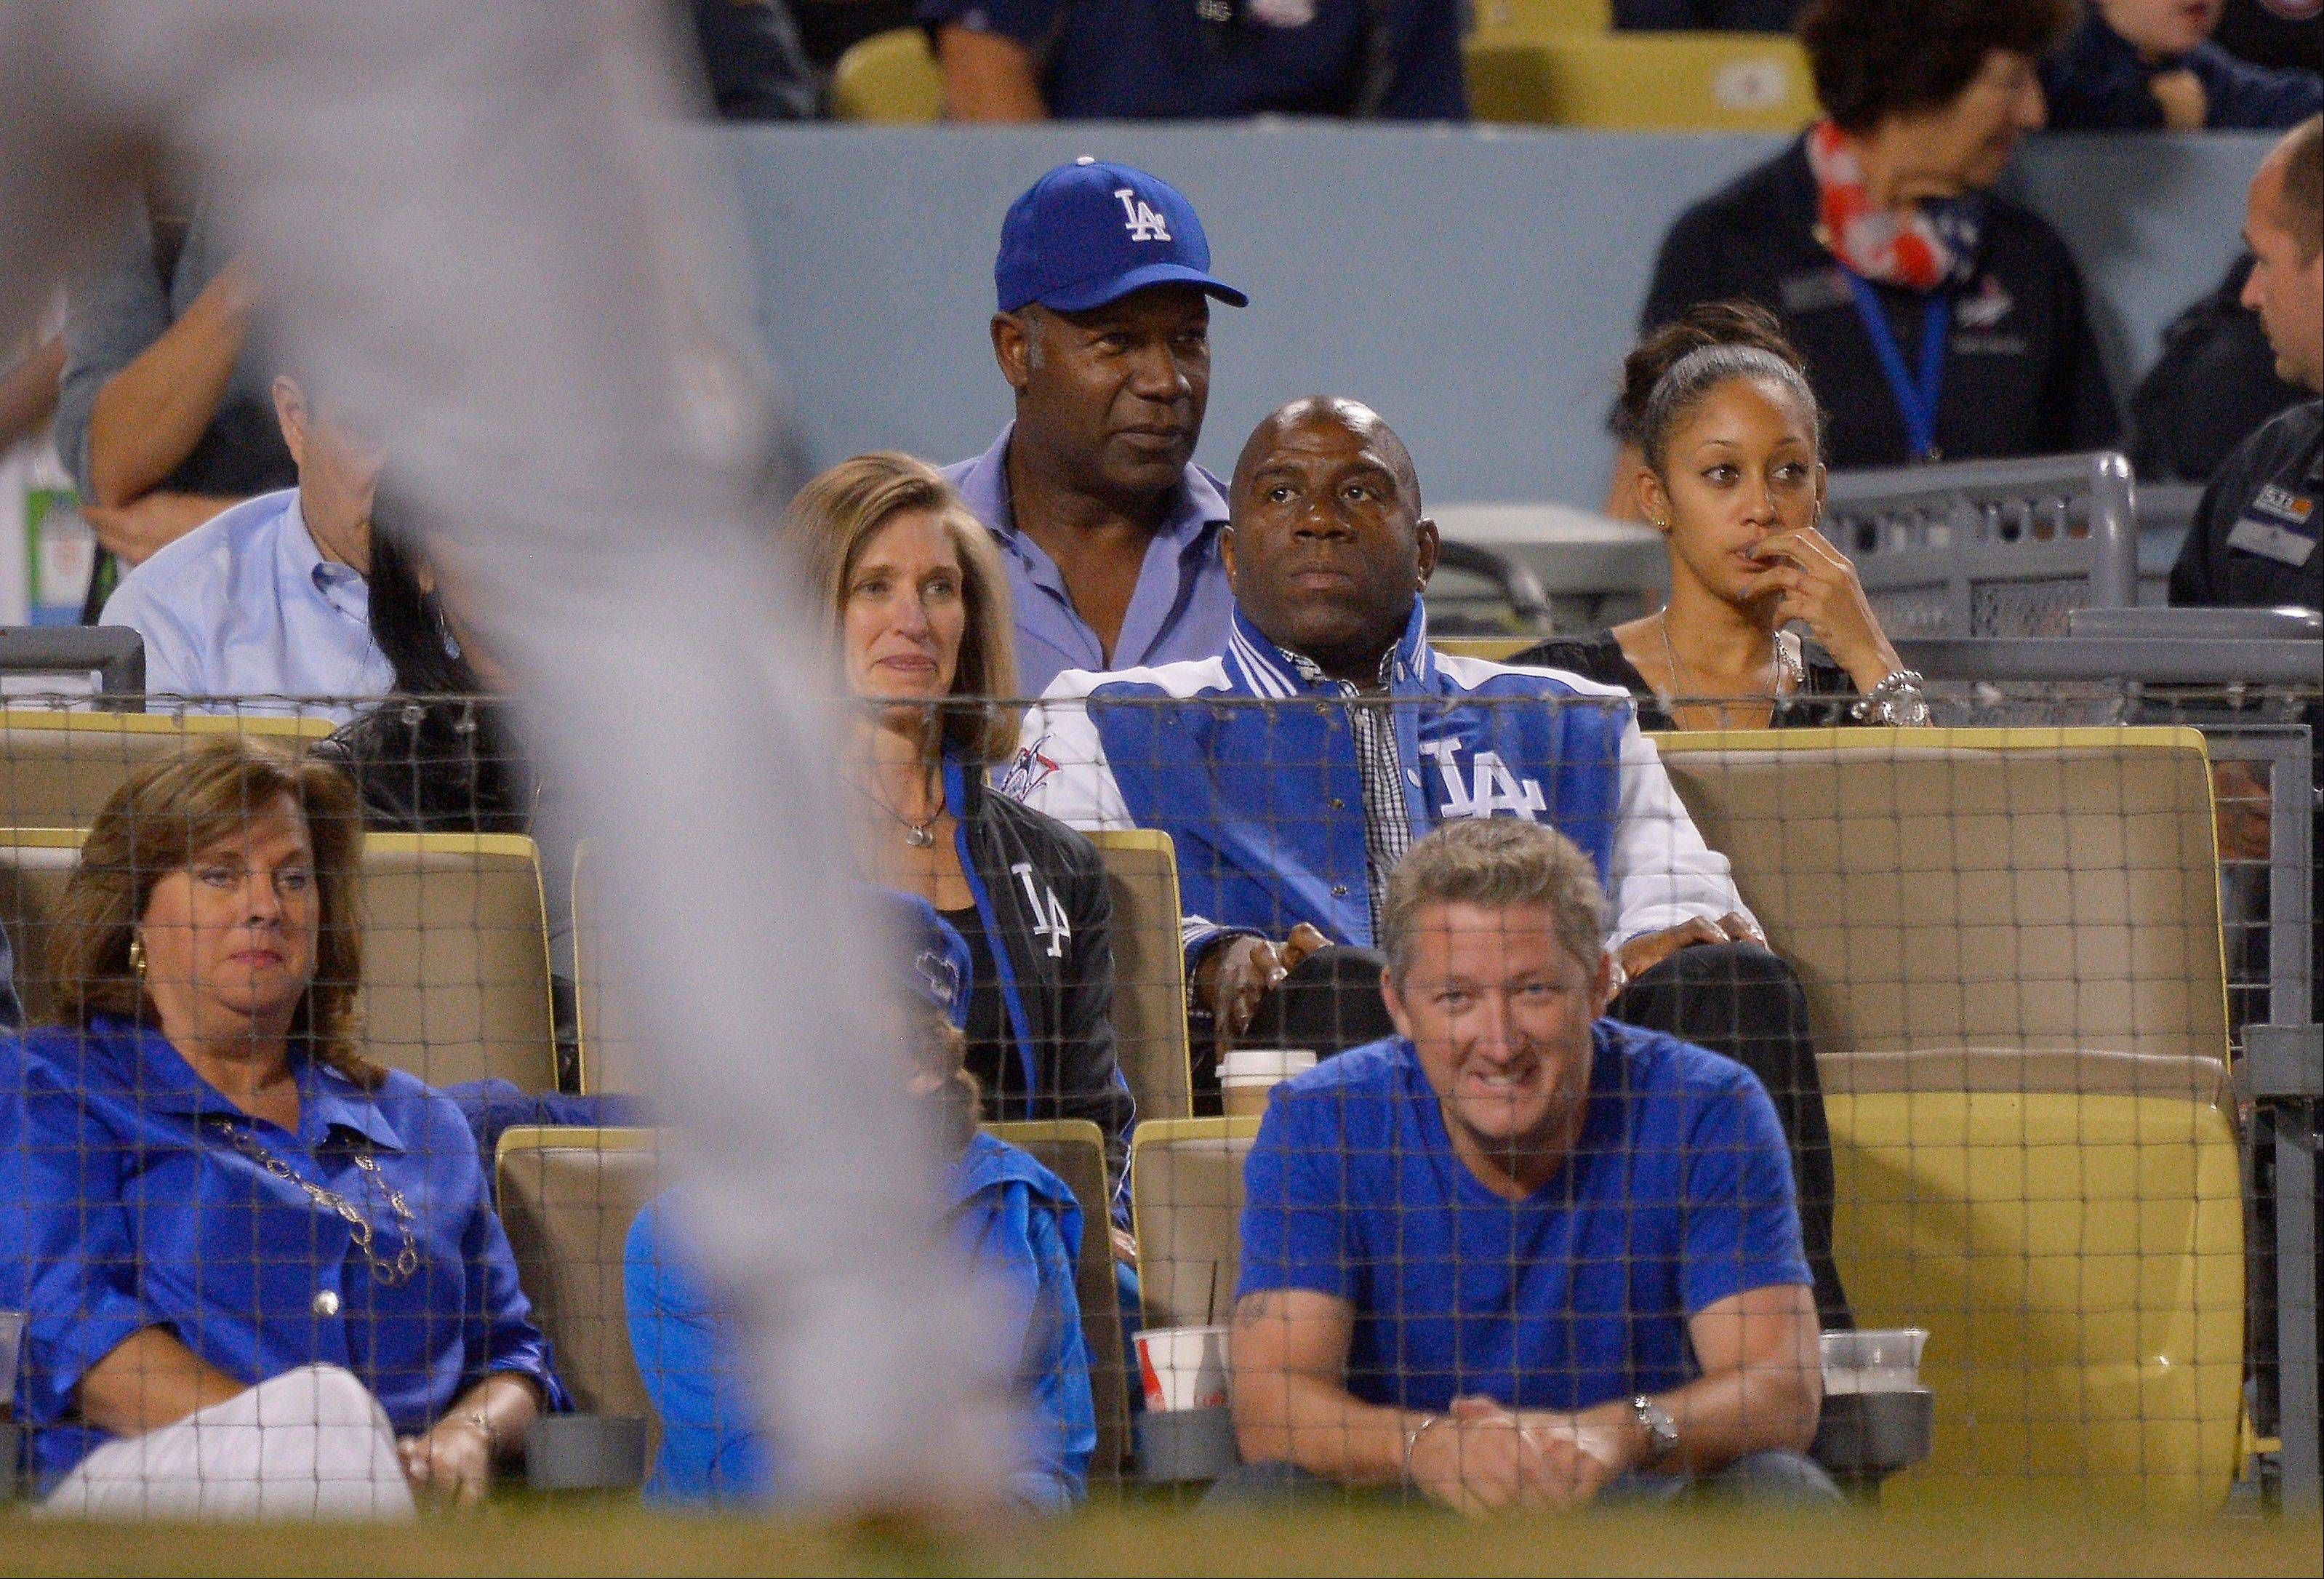 Dodgers owner Magic Johnson, center right, and actor Dennis Haysbert, second from left on top, watch during the sixth inning.